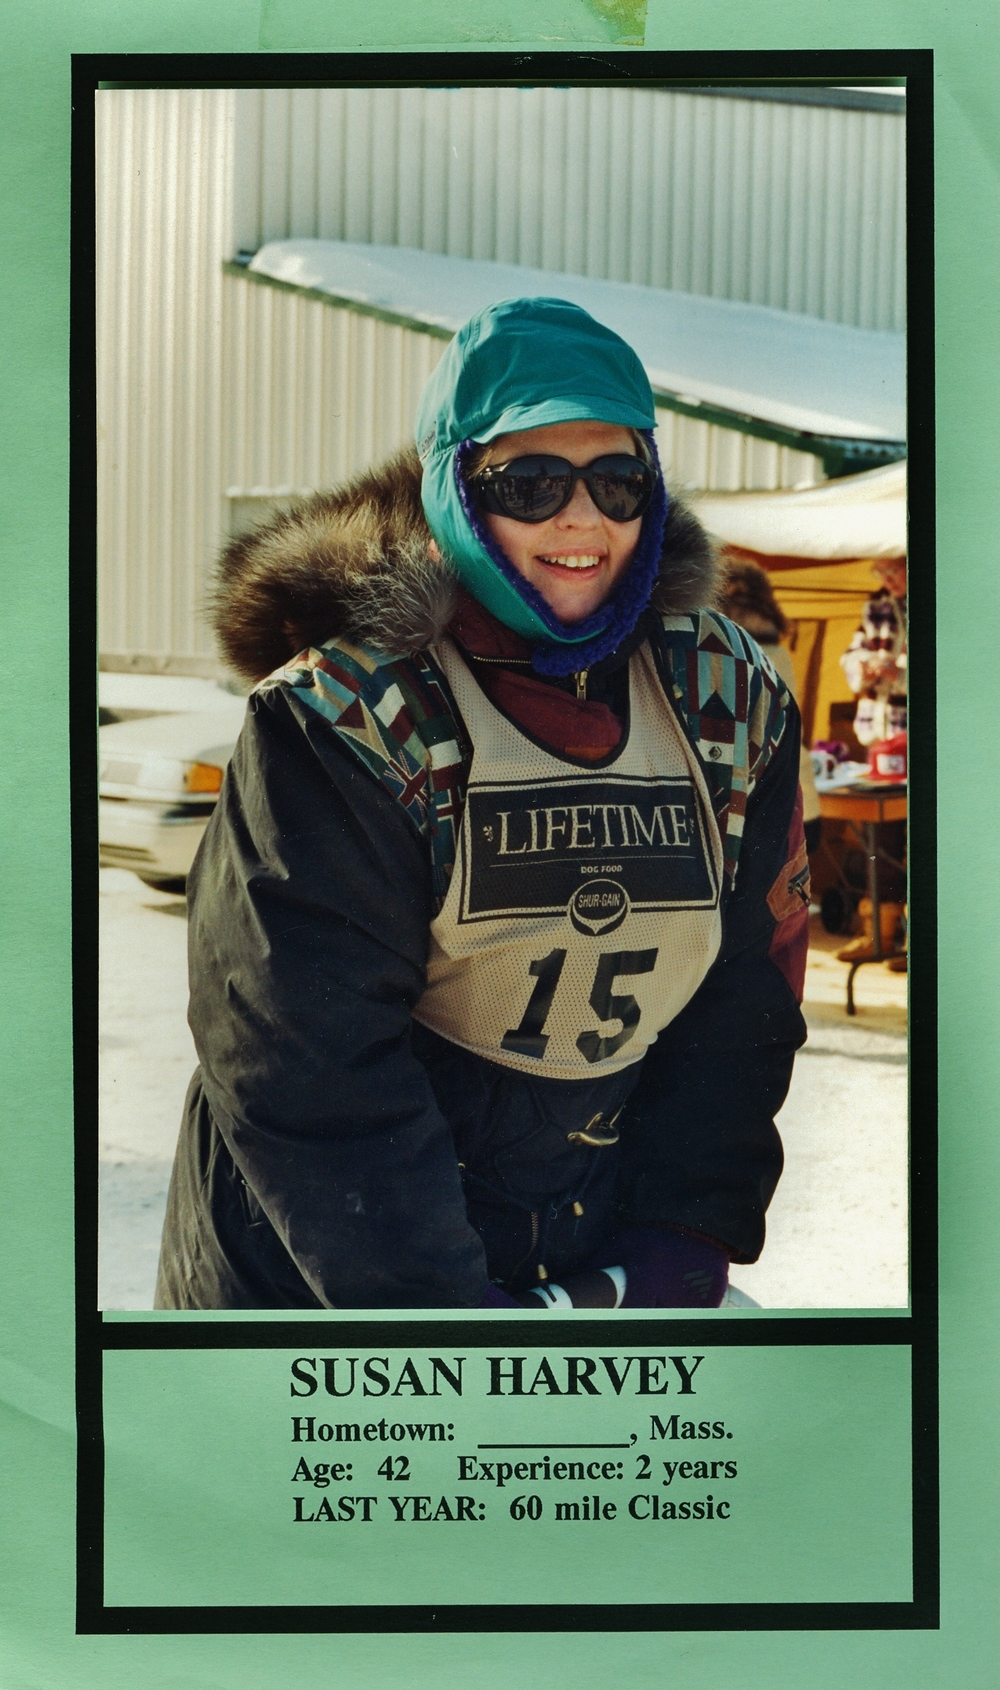 Snofest 1994 Susan Harvey,  Massachusettes.jpg